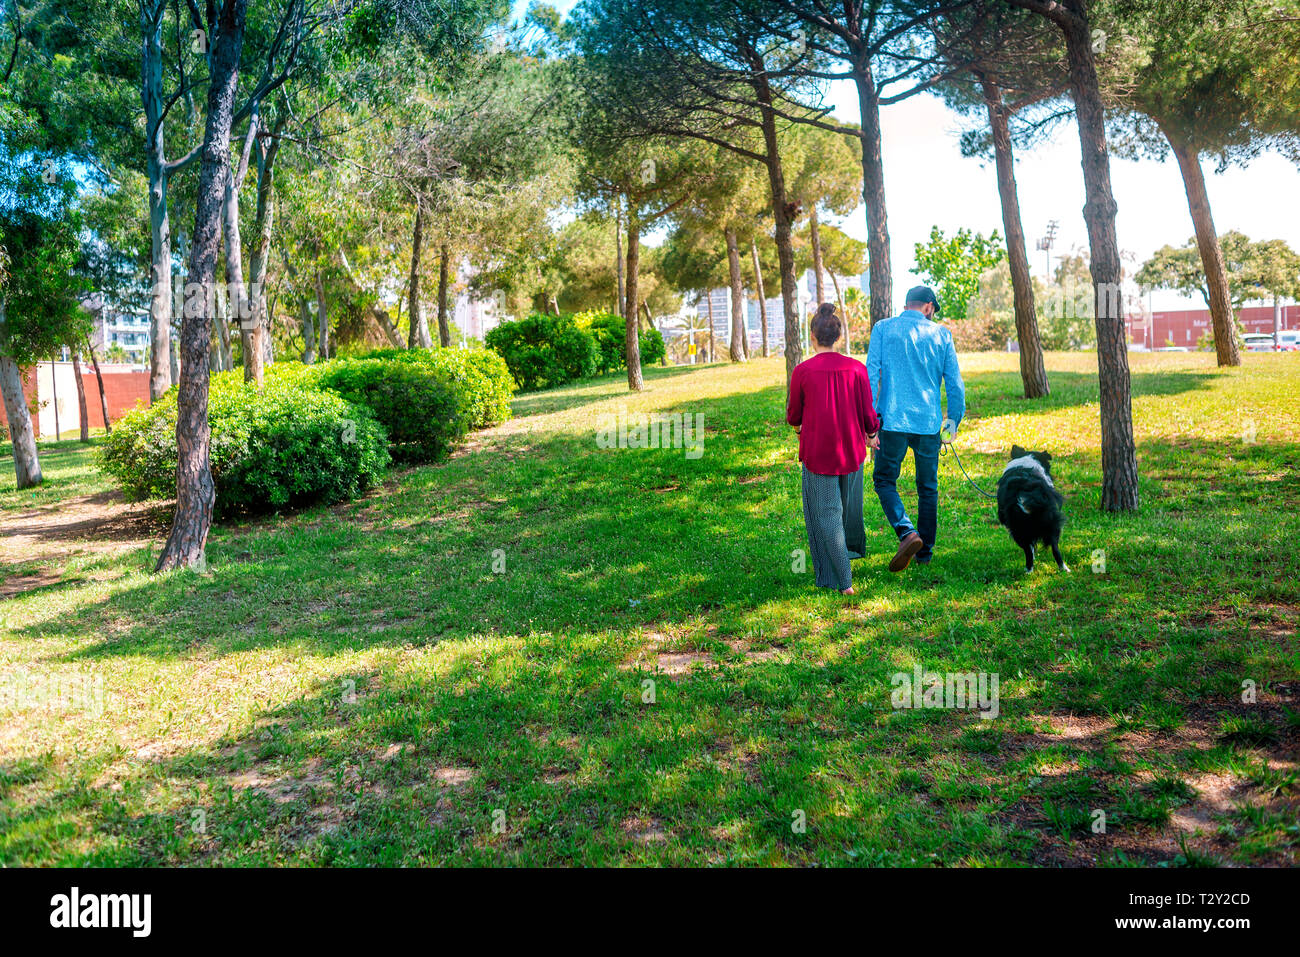 Rear view of couple and dog walking at park - Stock Image